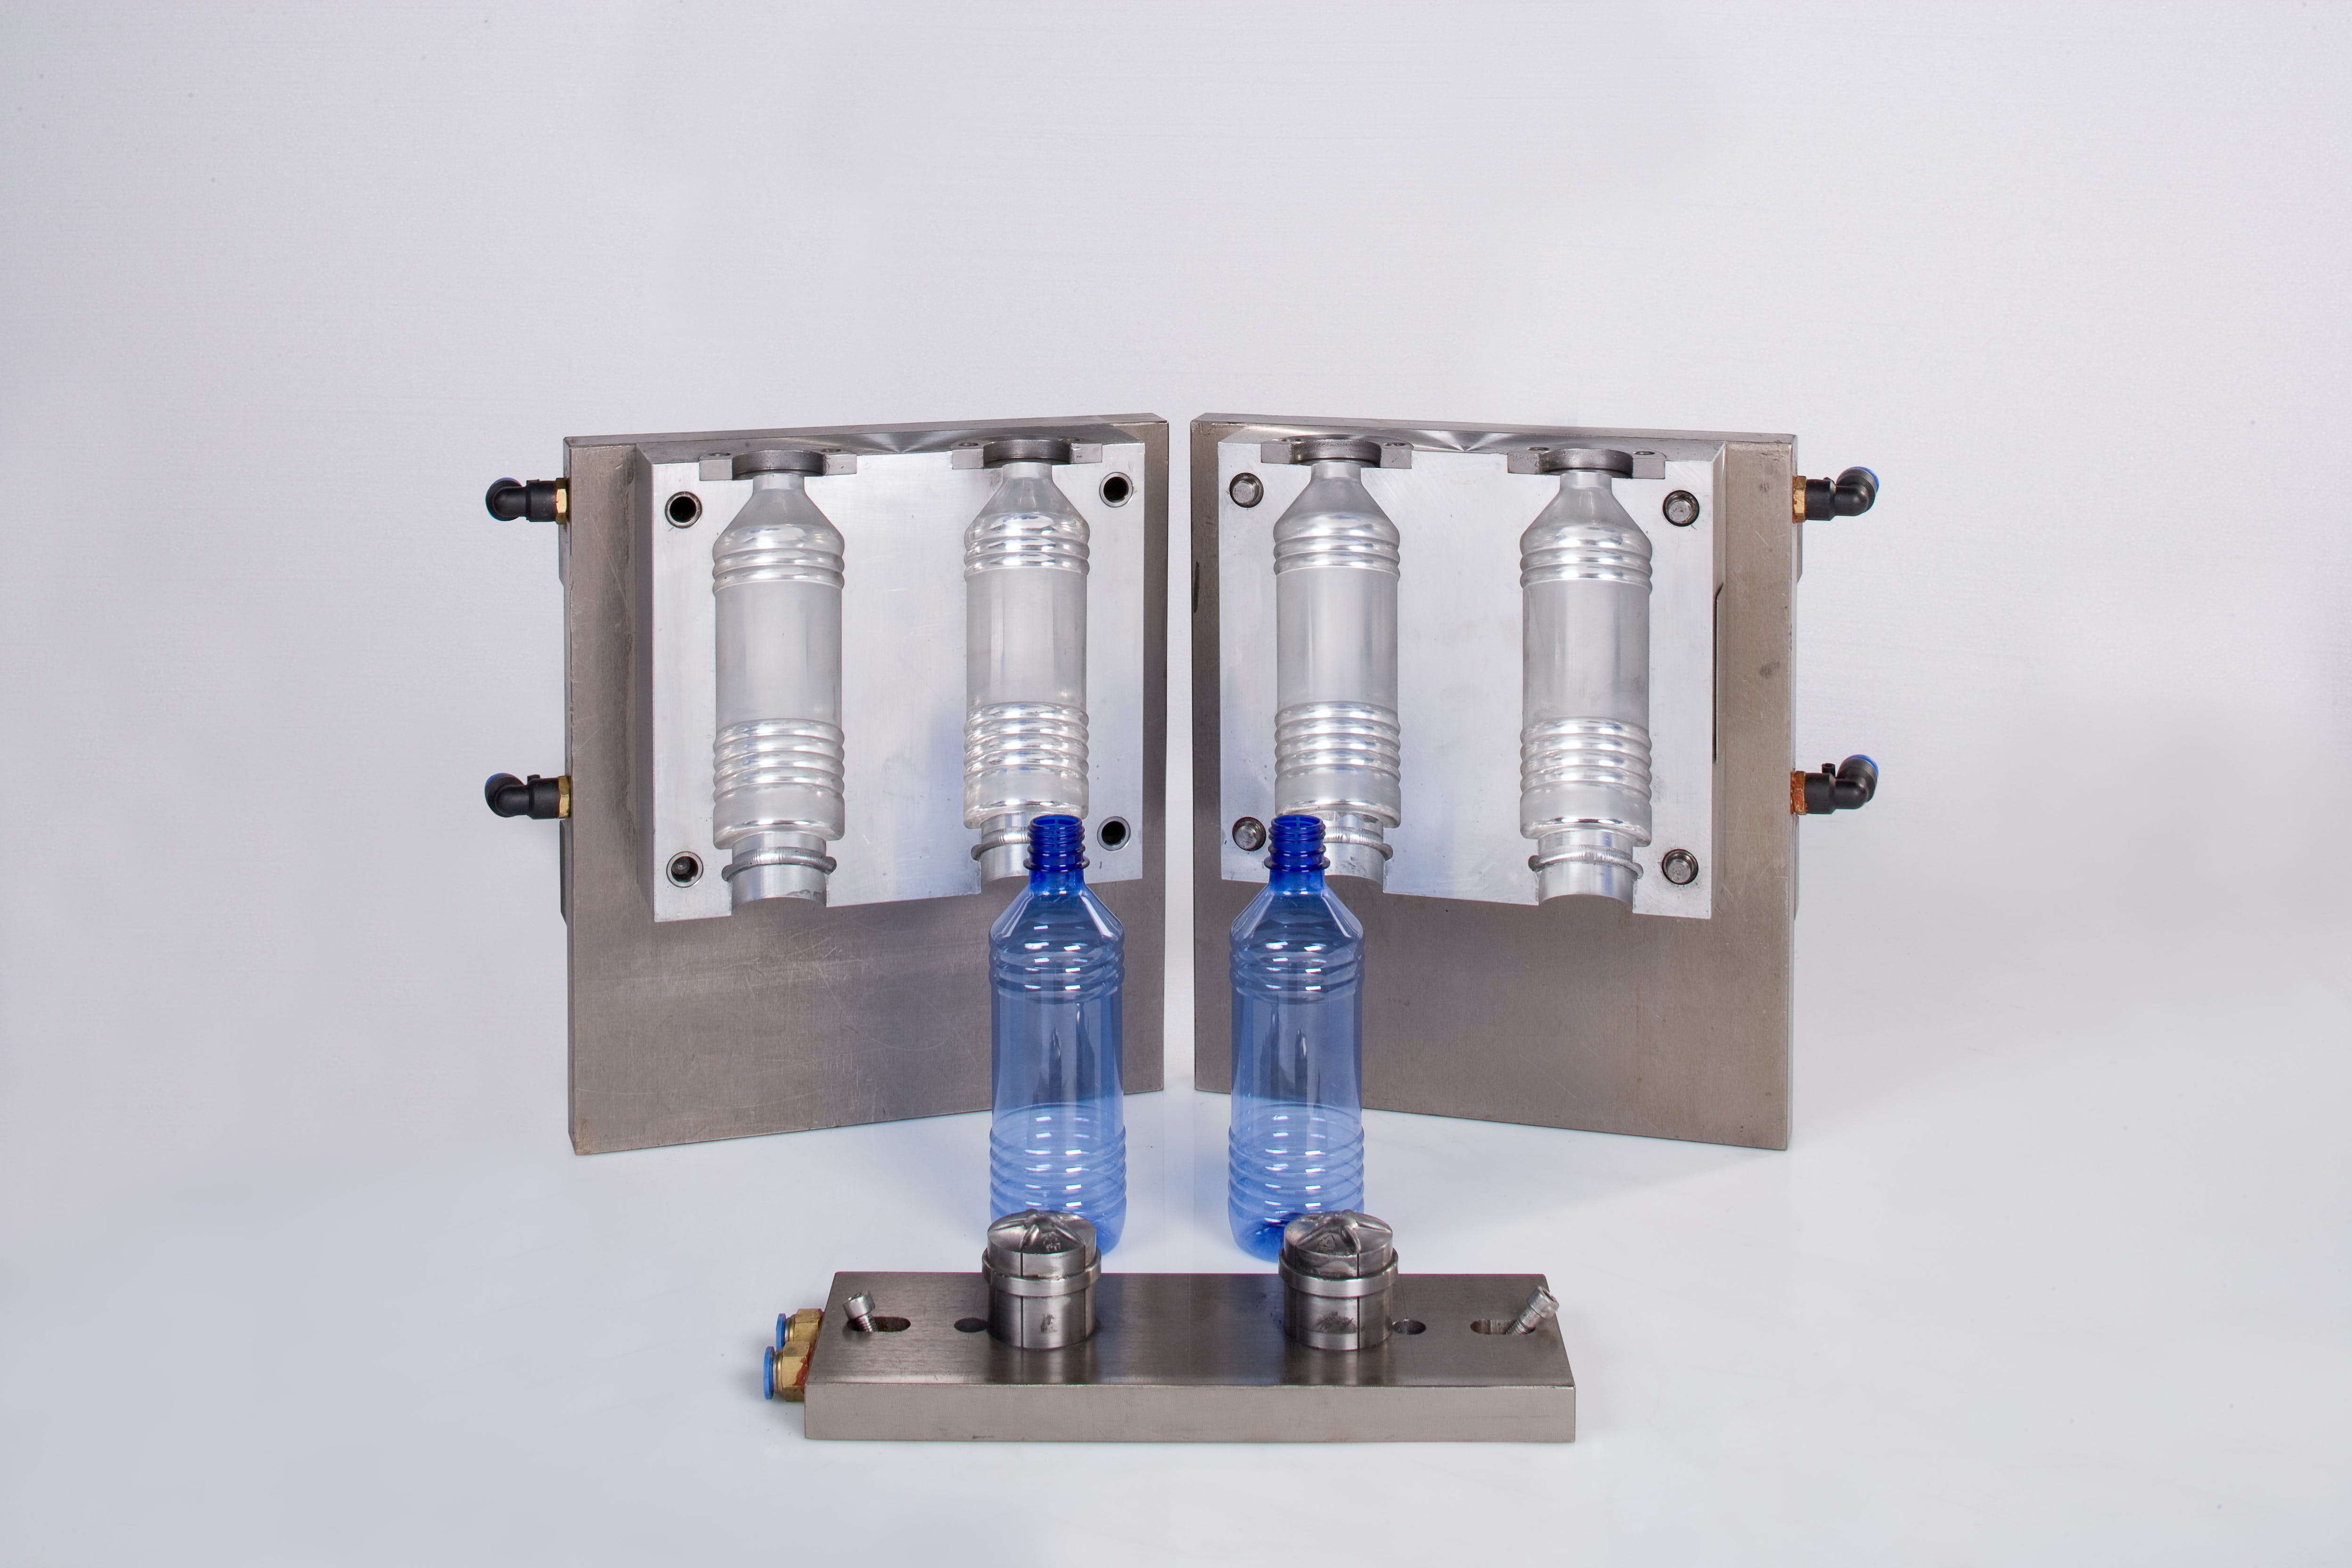 2-Bottle Mold (All molds are customized to customers request) - Blow Molder (Designed for water bottles only) - sold by American Beer Equipment